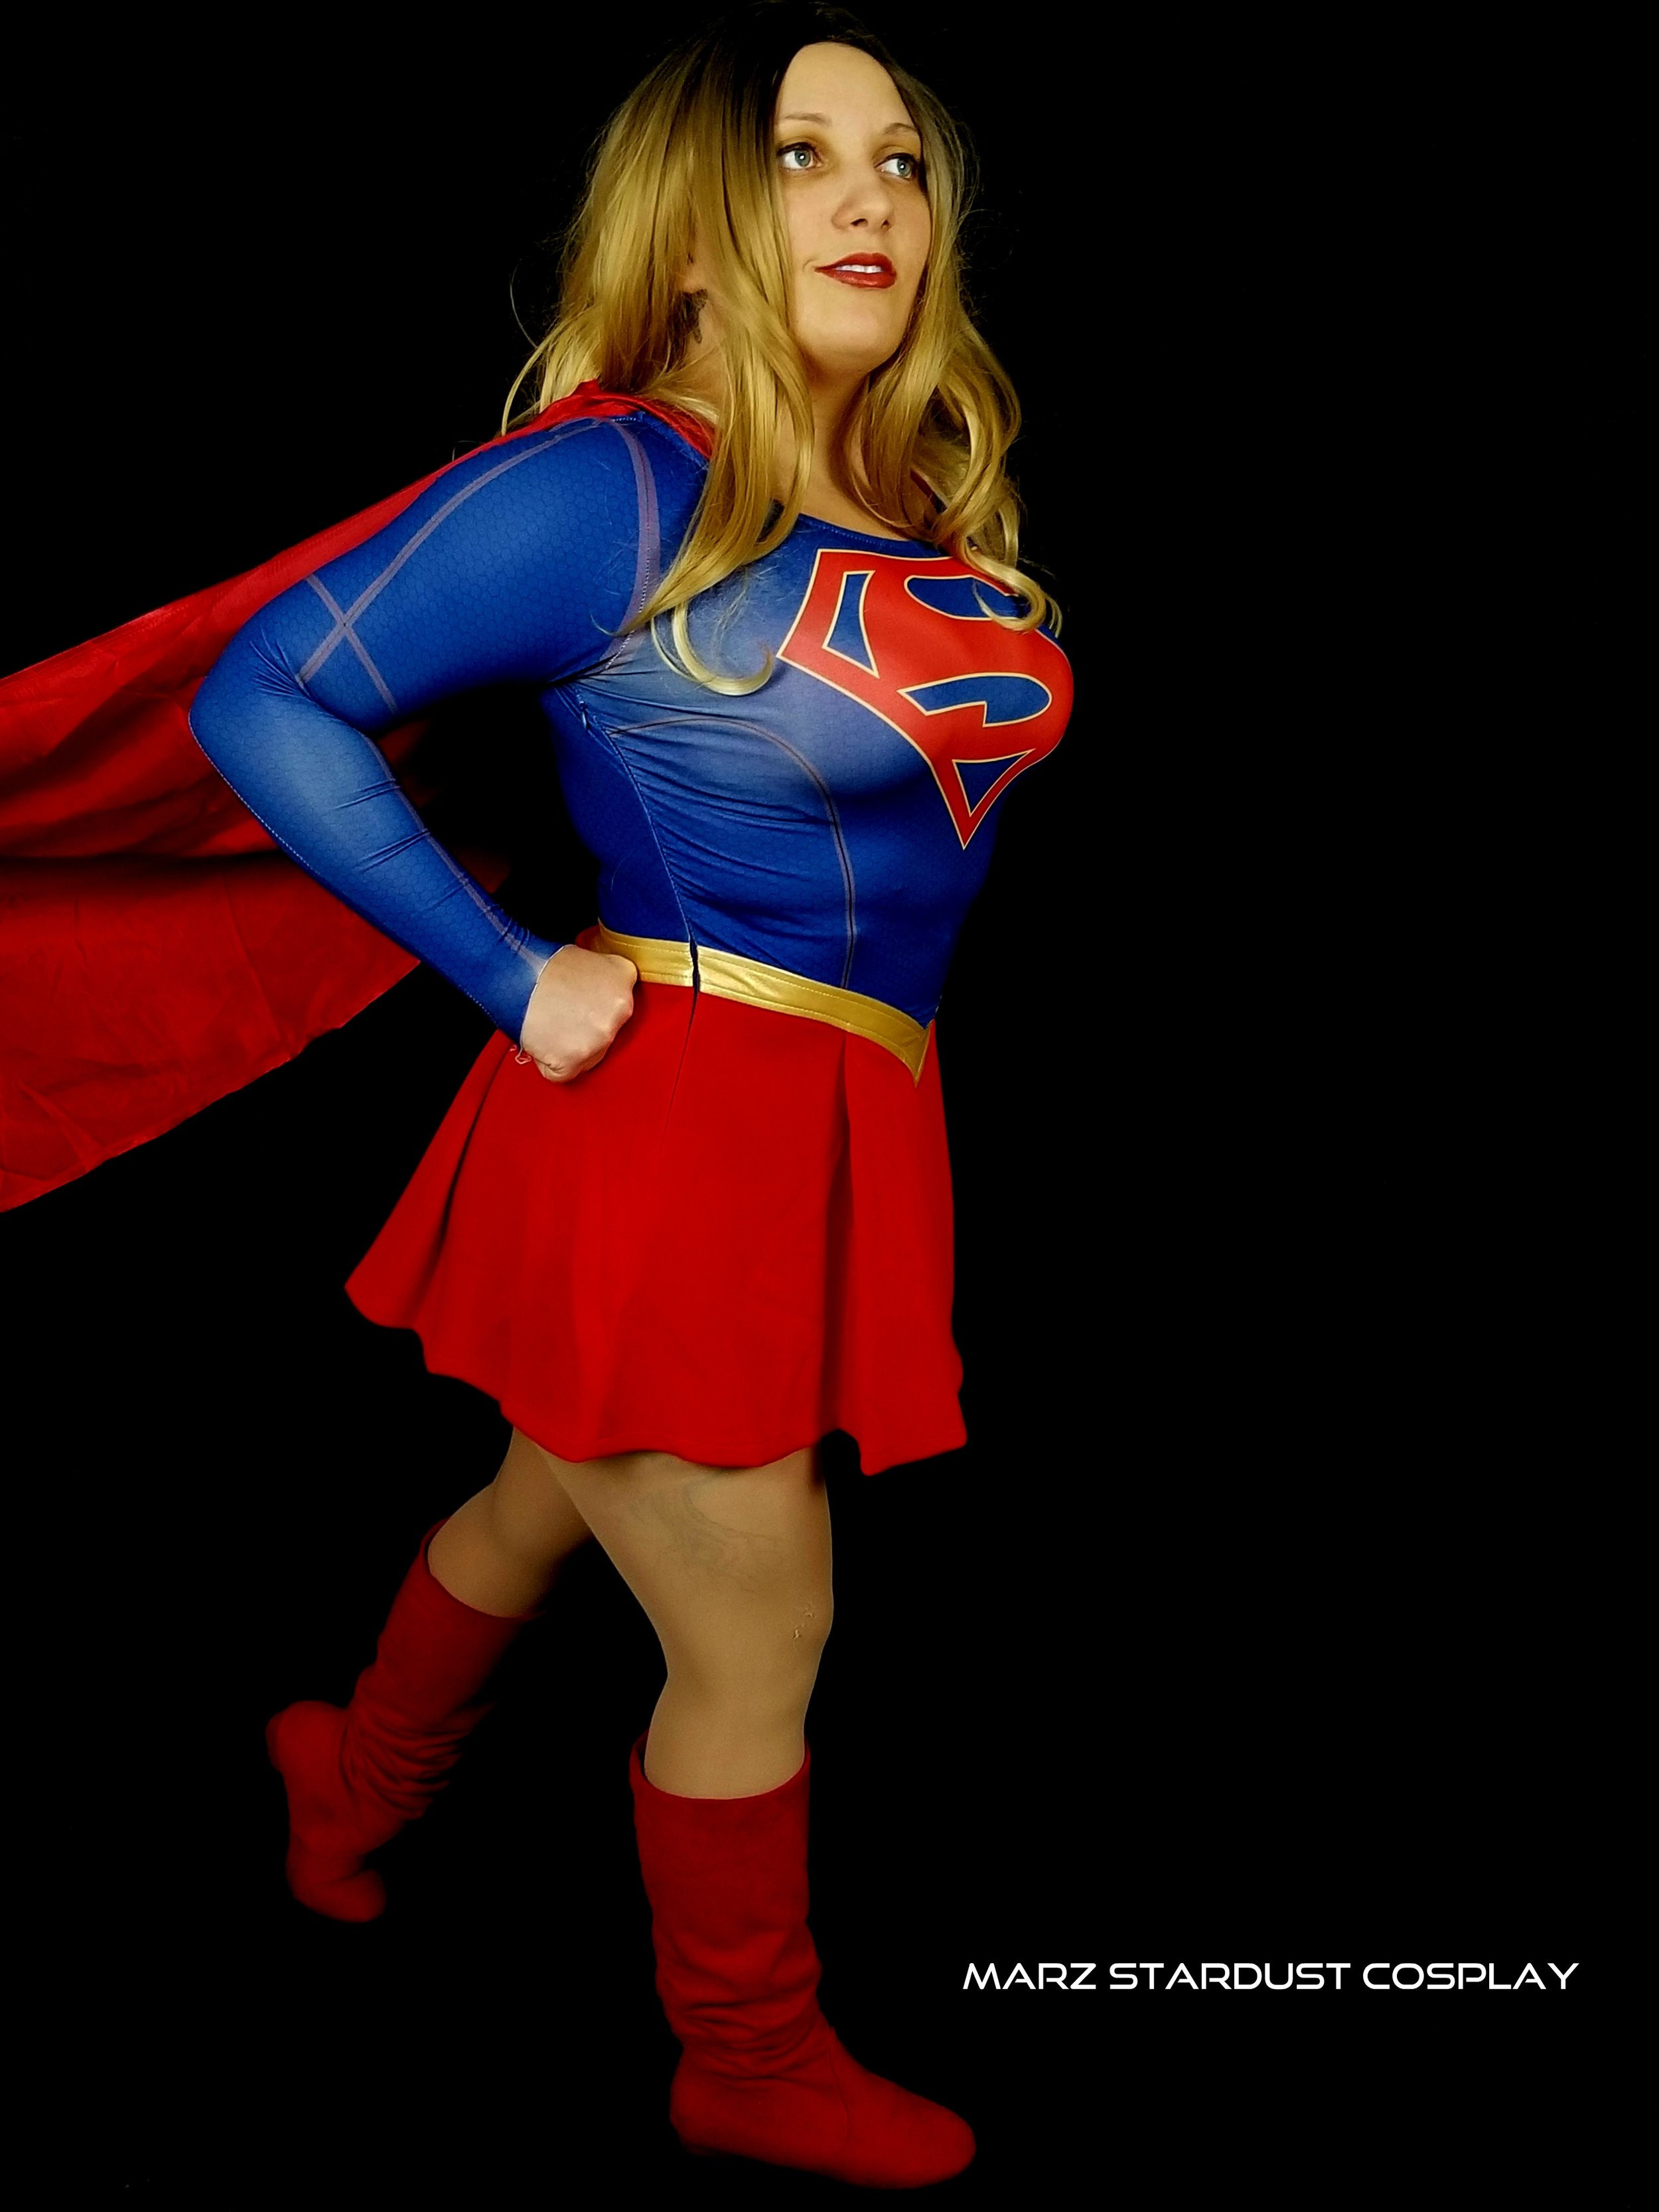 Cosplay supergirl Discover supergirl